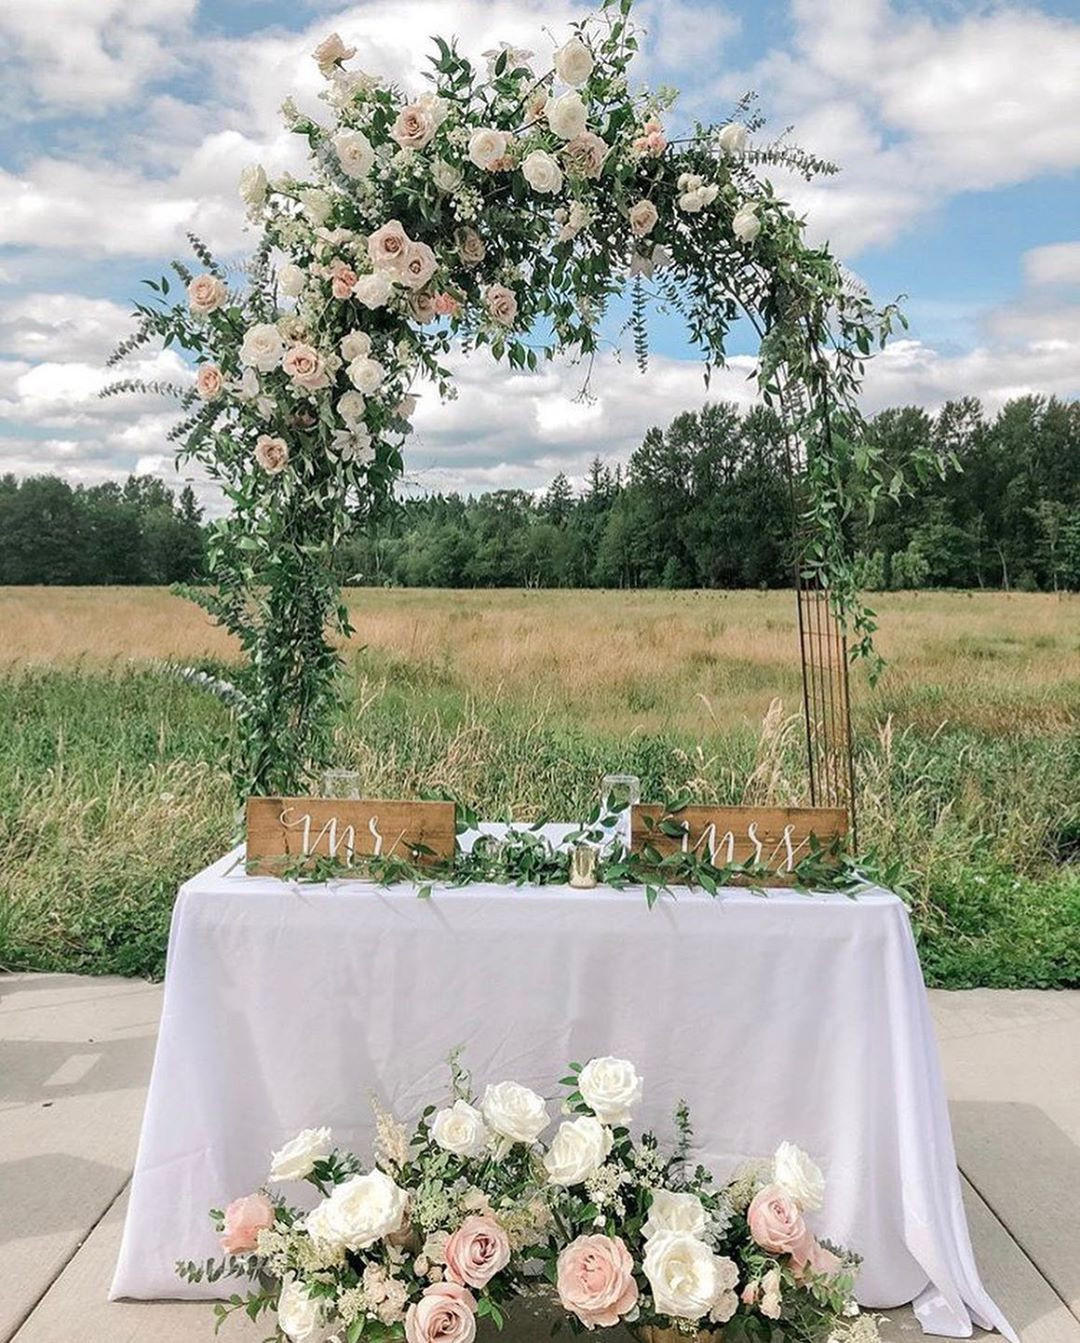 45 Best  Wedding Arches Ideas For Inspirations,outdoor wedding arch ideas,indoor wedding arch ideas,cheap wedding arch ideas,diy wedding arch ideas